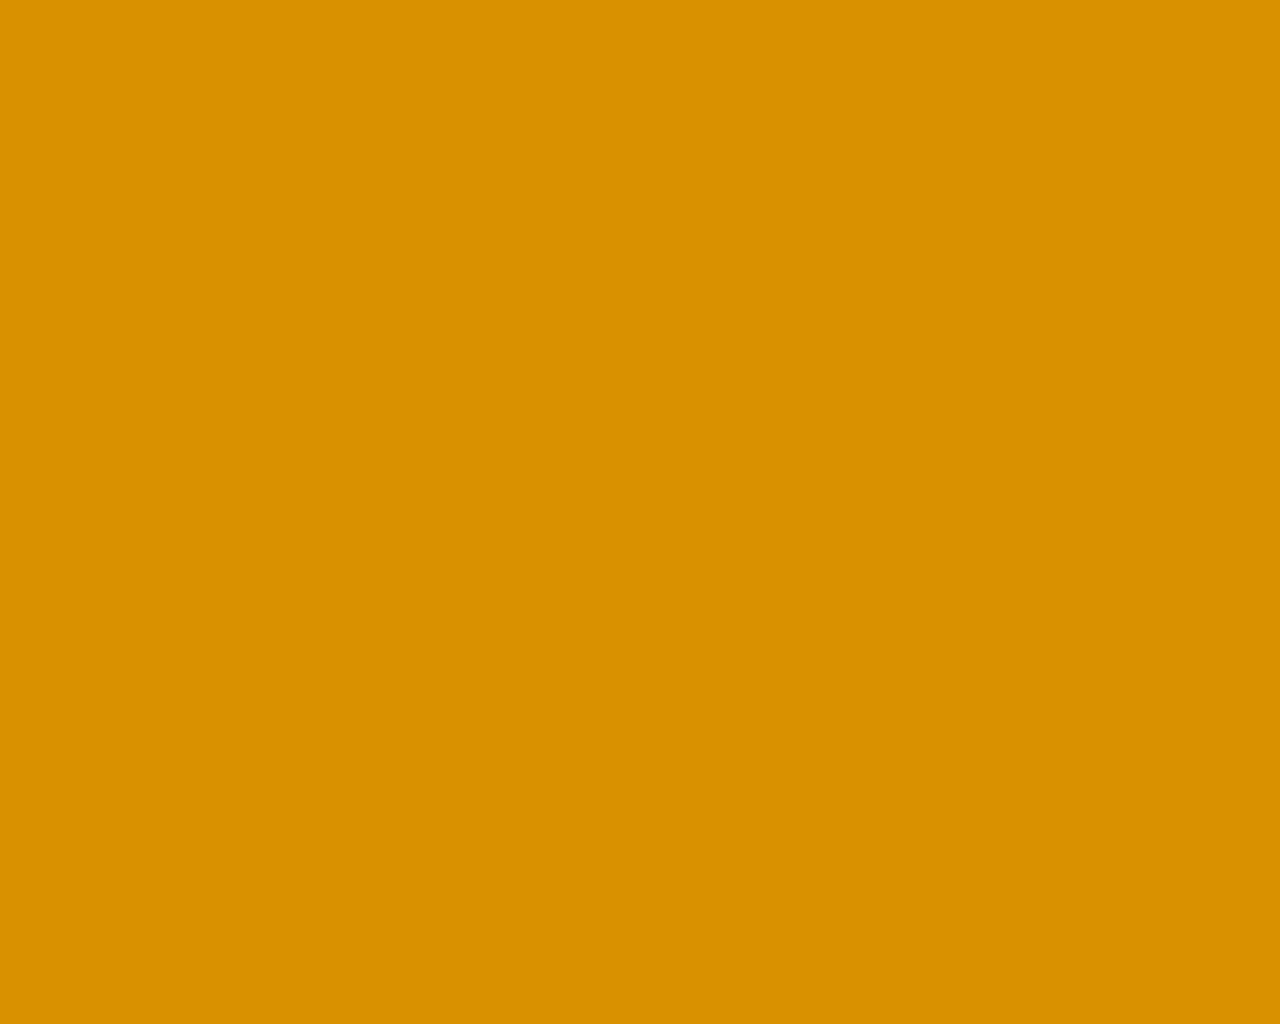 1280x1024 Harvest Gold Solid Color Background